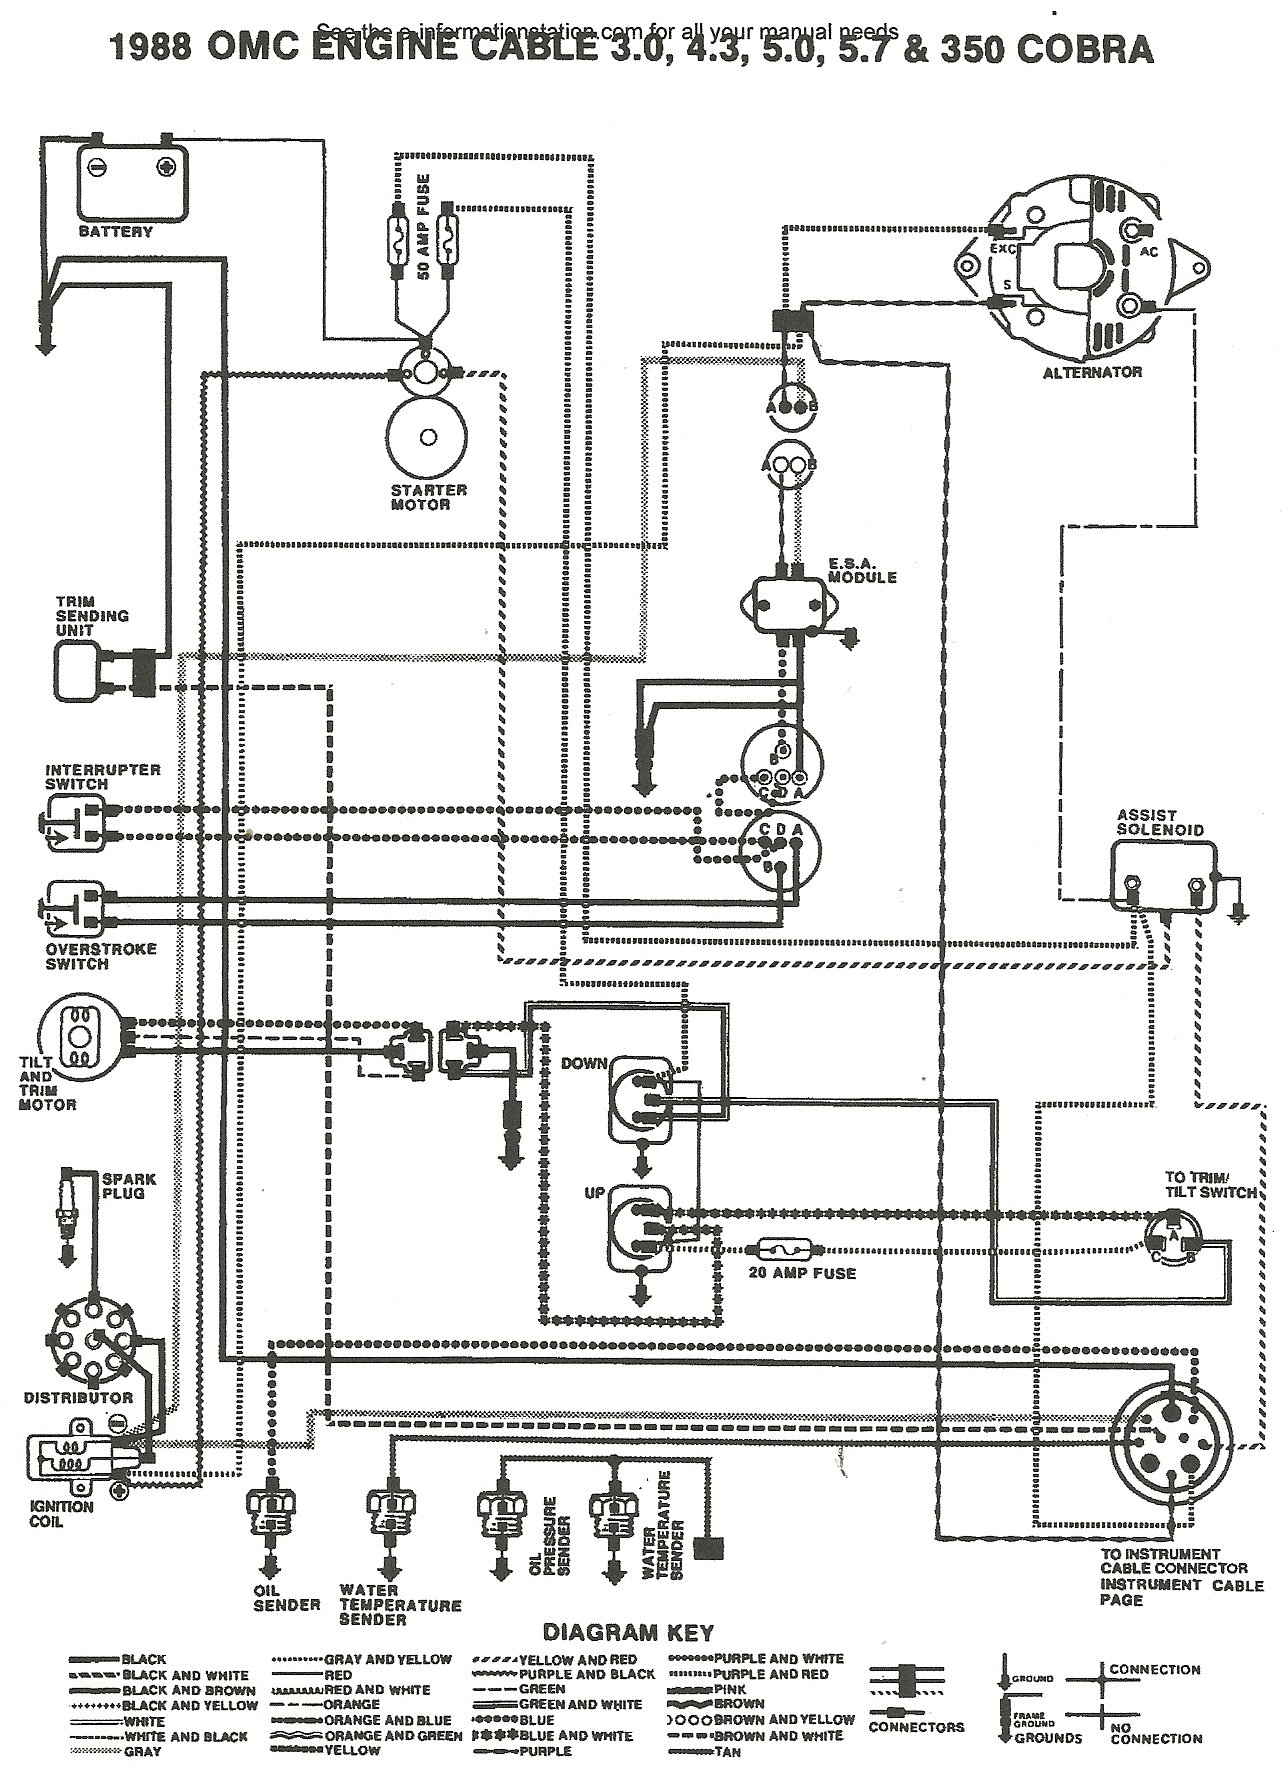 DIAGRAM] Omc Cobra Ignition Wiring Diagram FULL Version HD Quality Wiring  Diagram - TVDIAGRAM.VERITAPERALDRO.ITDiagram Database